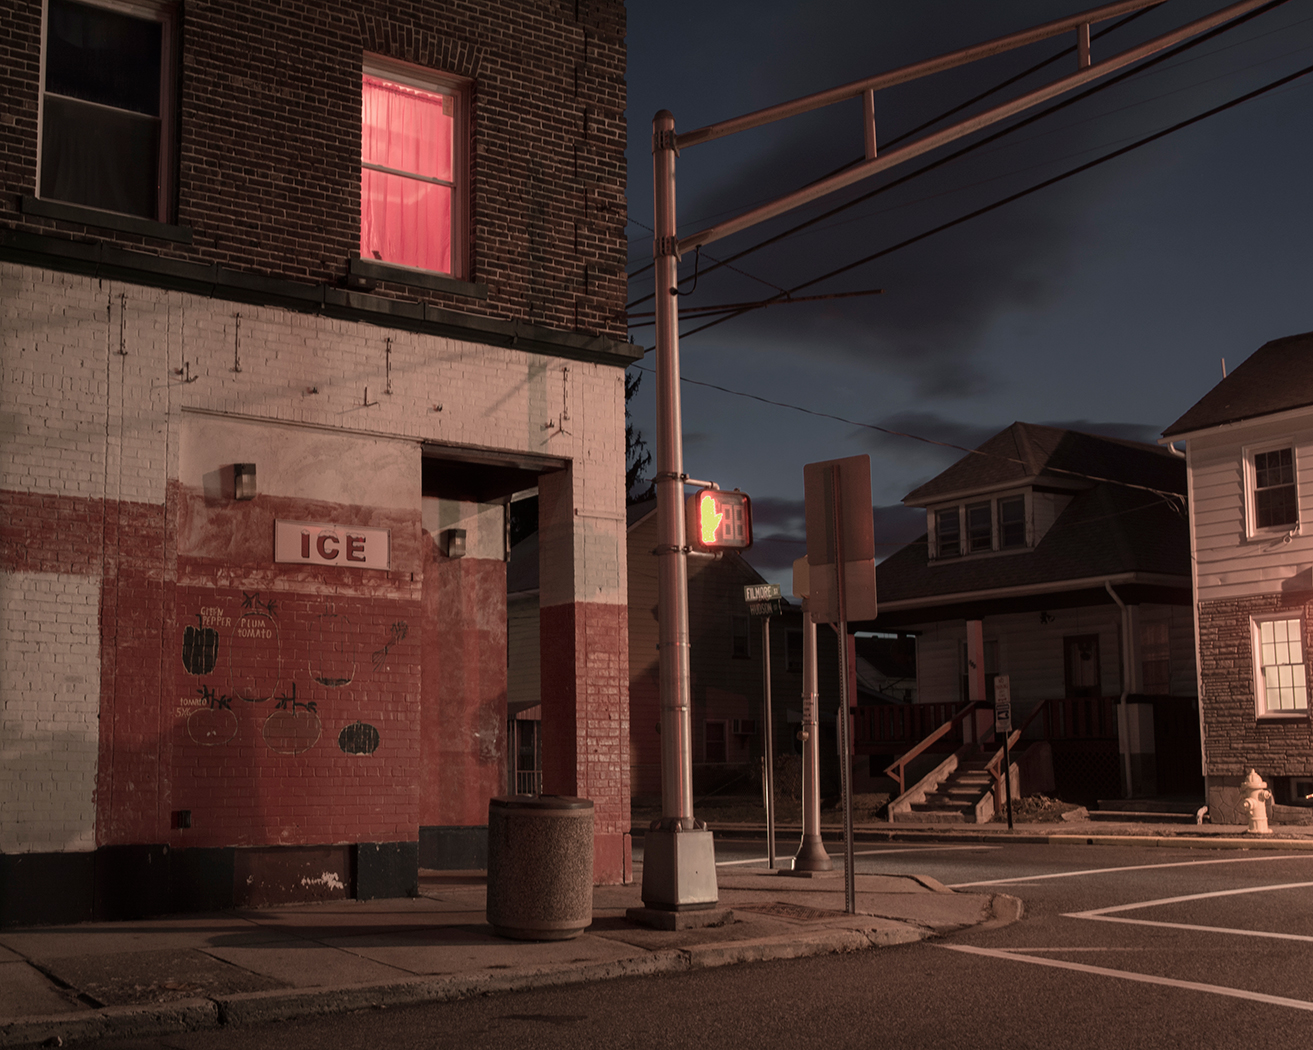 phillipsburg,night,dark,urban